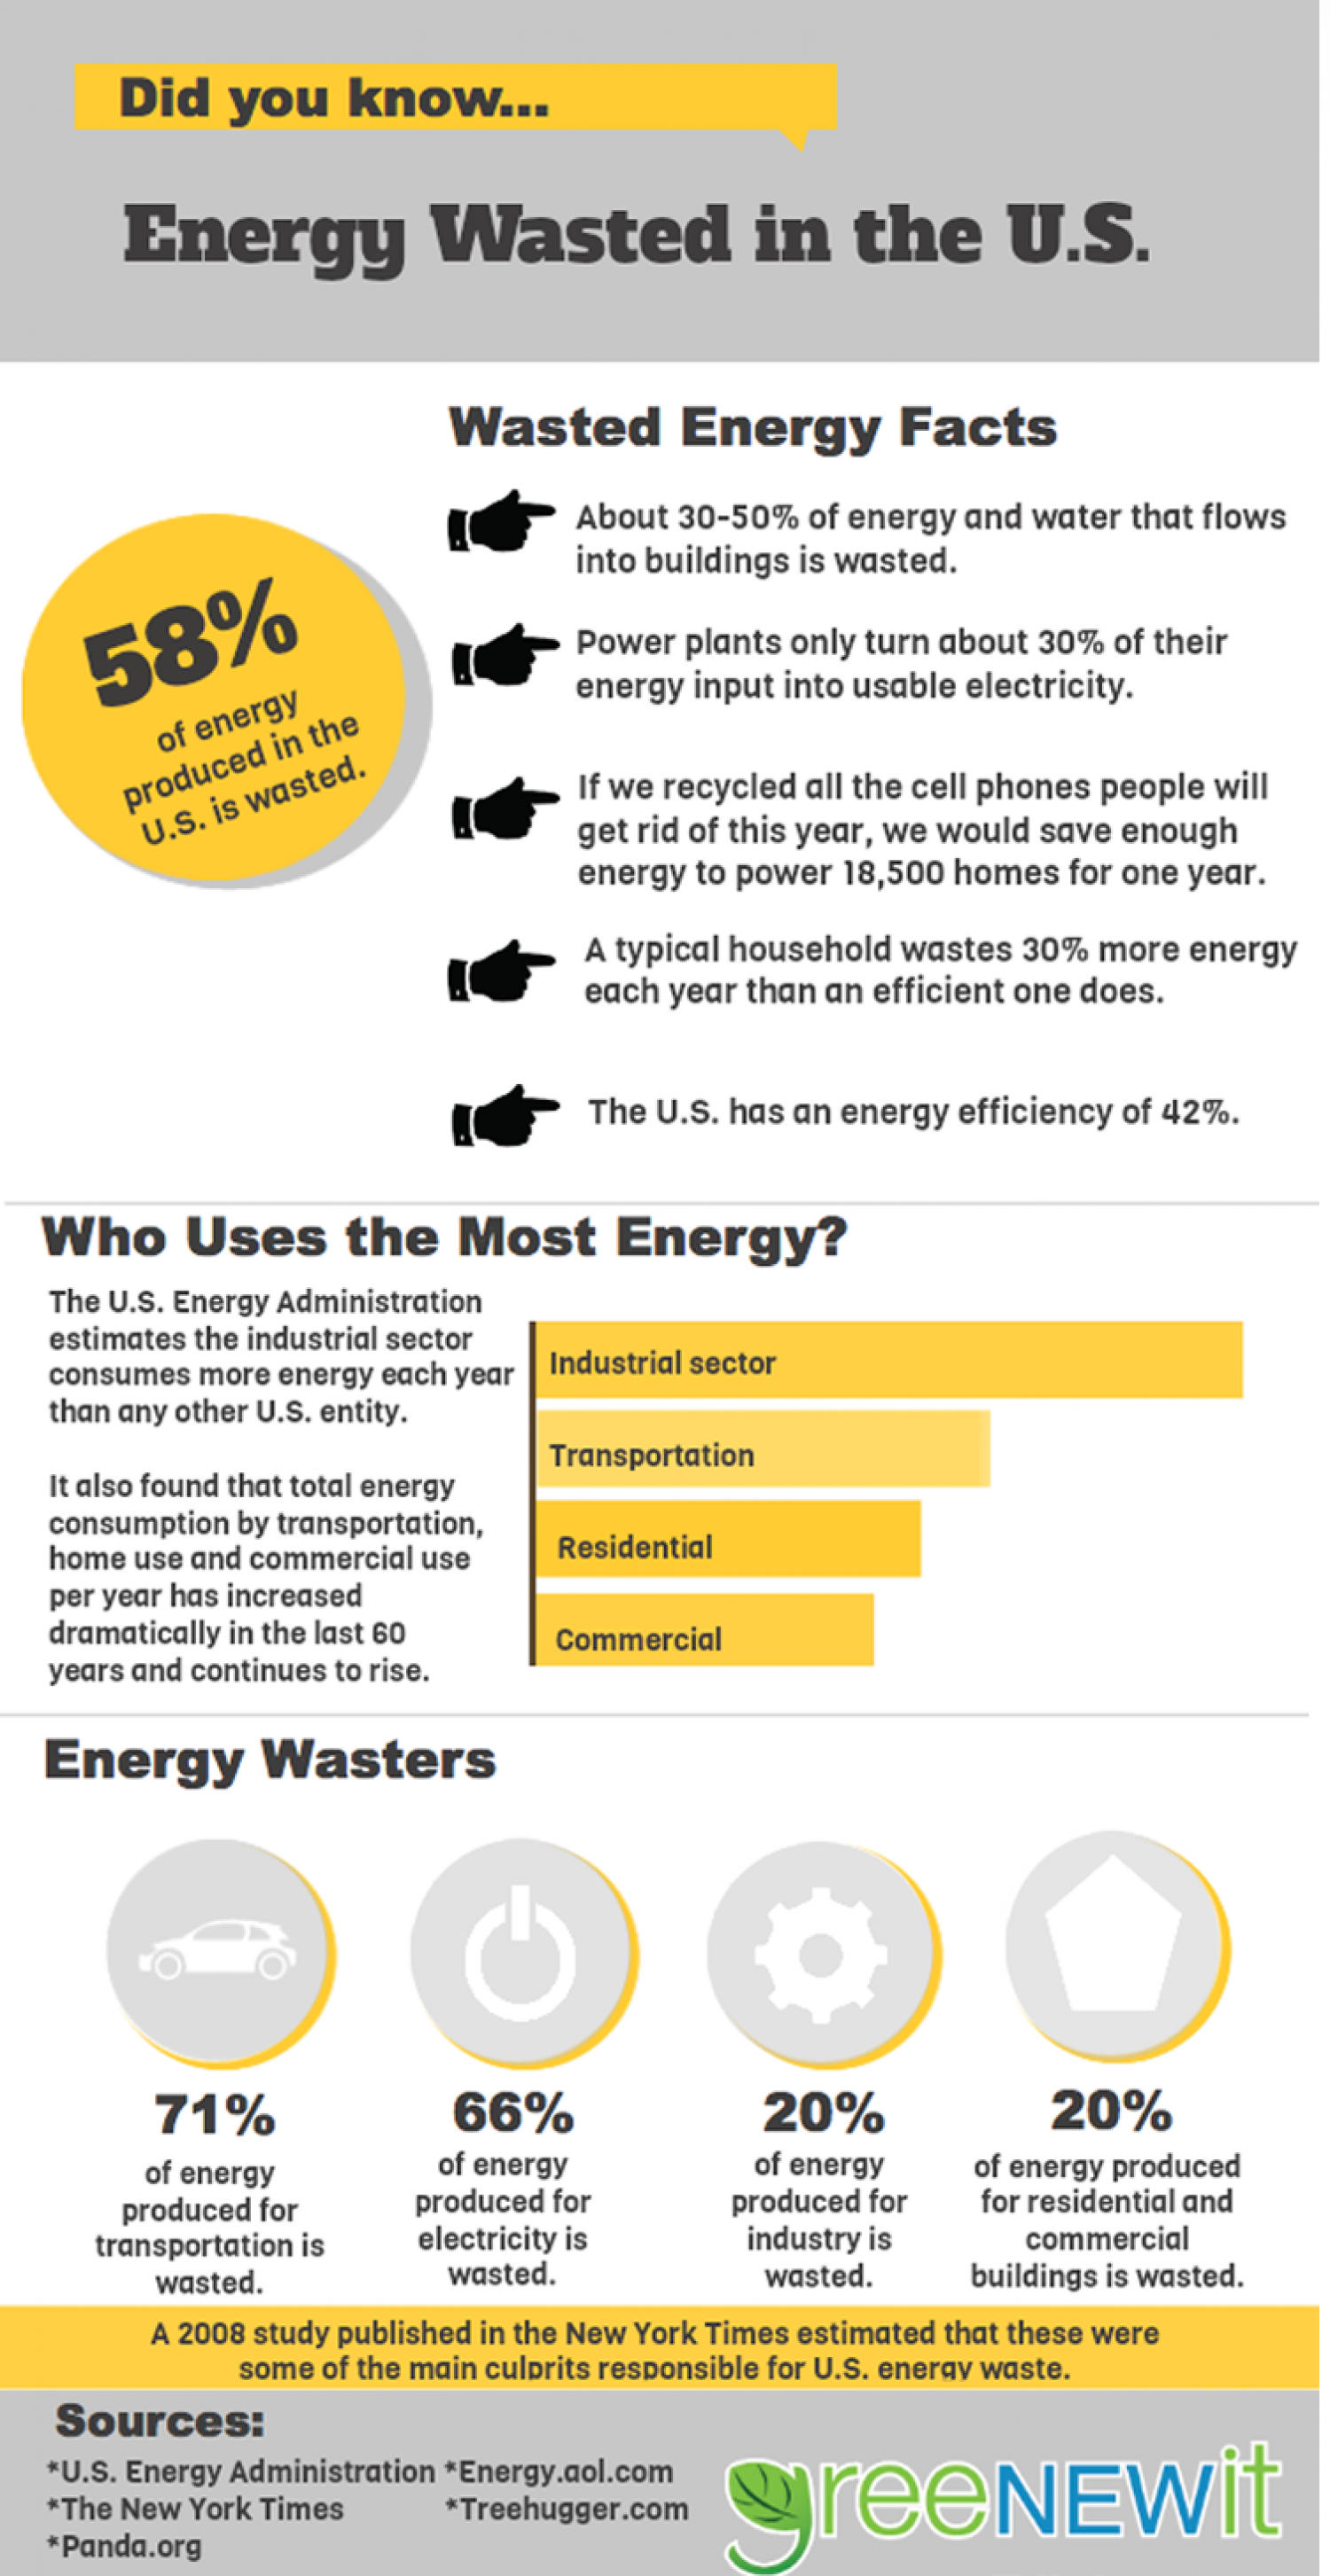 Energy Wasted in the U.S. Infographic